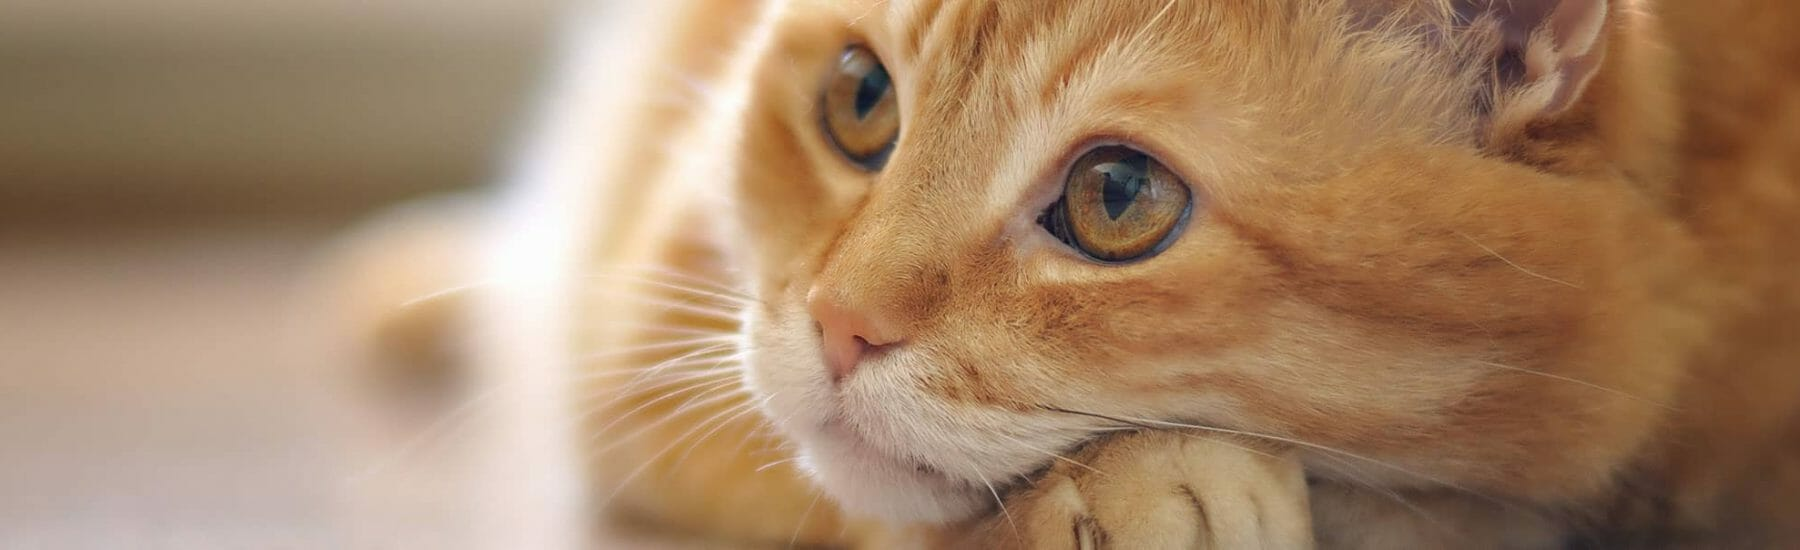 A ginger cat looks into the distance